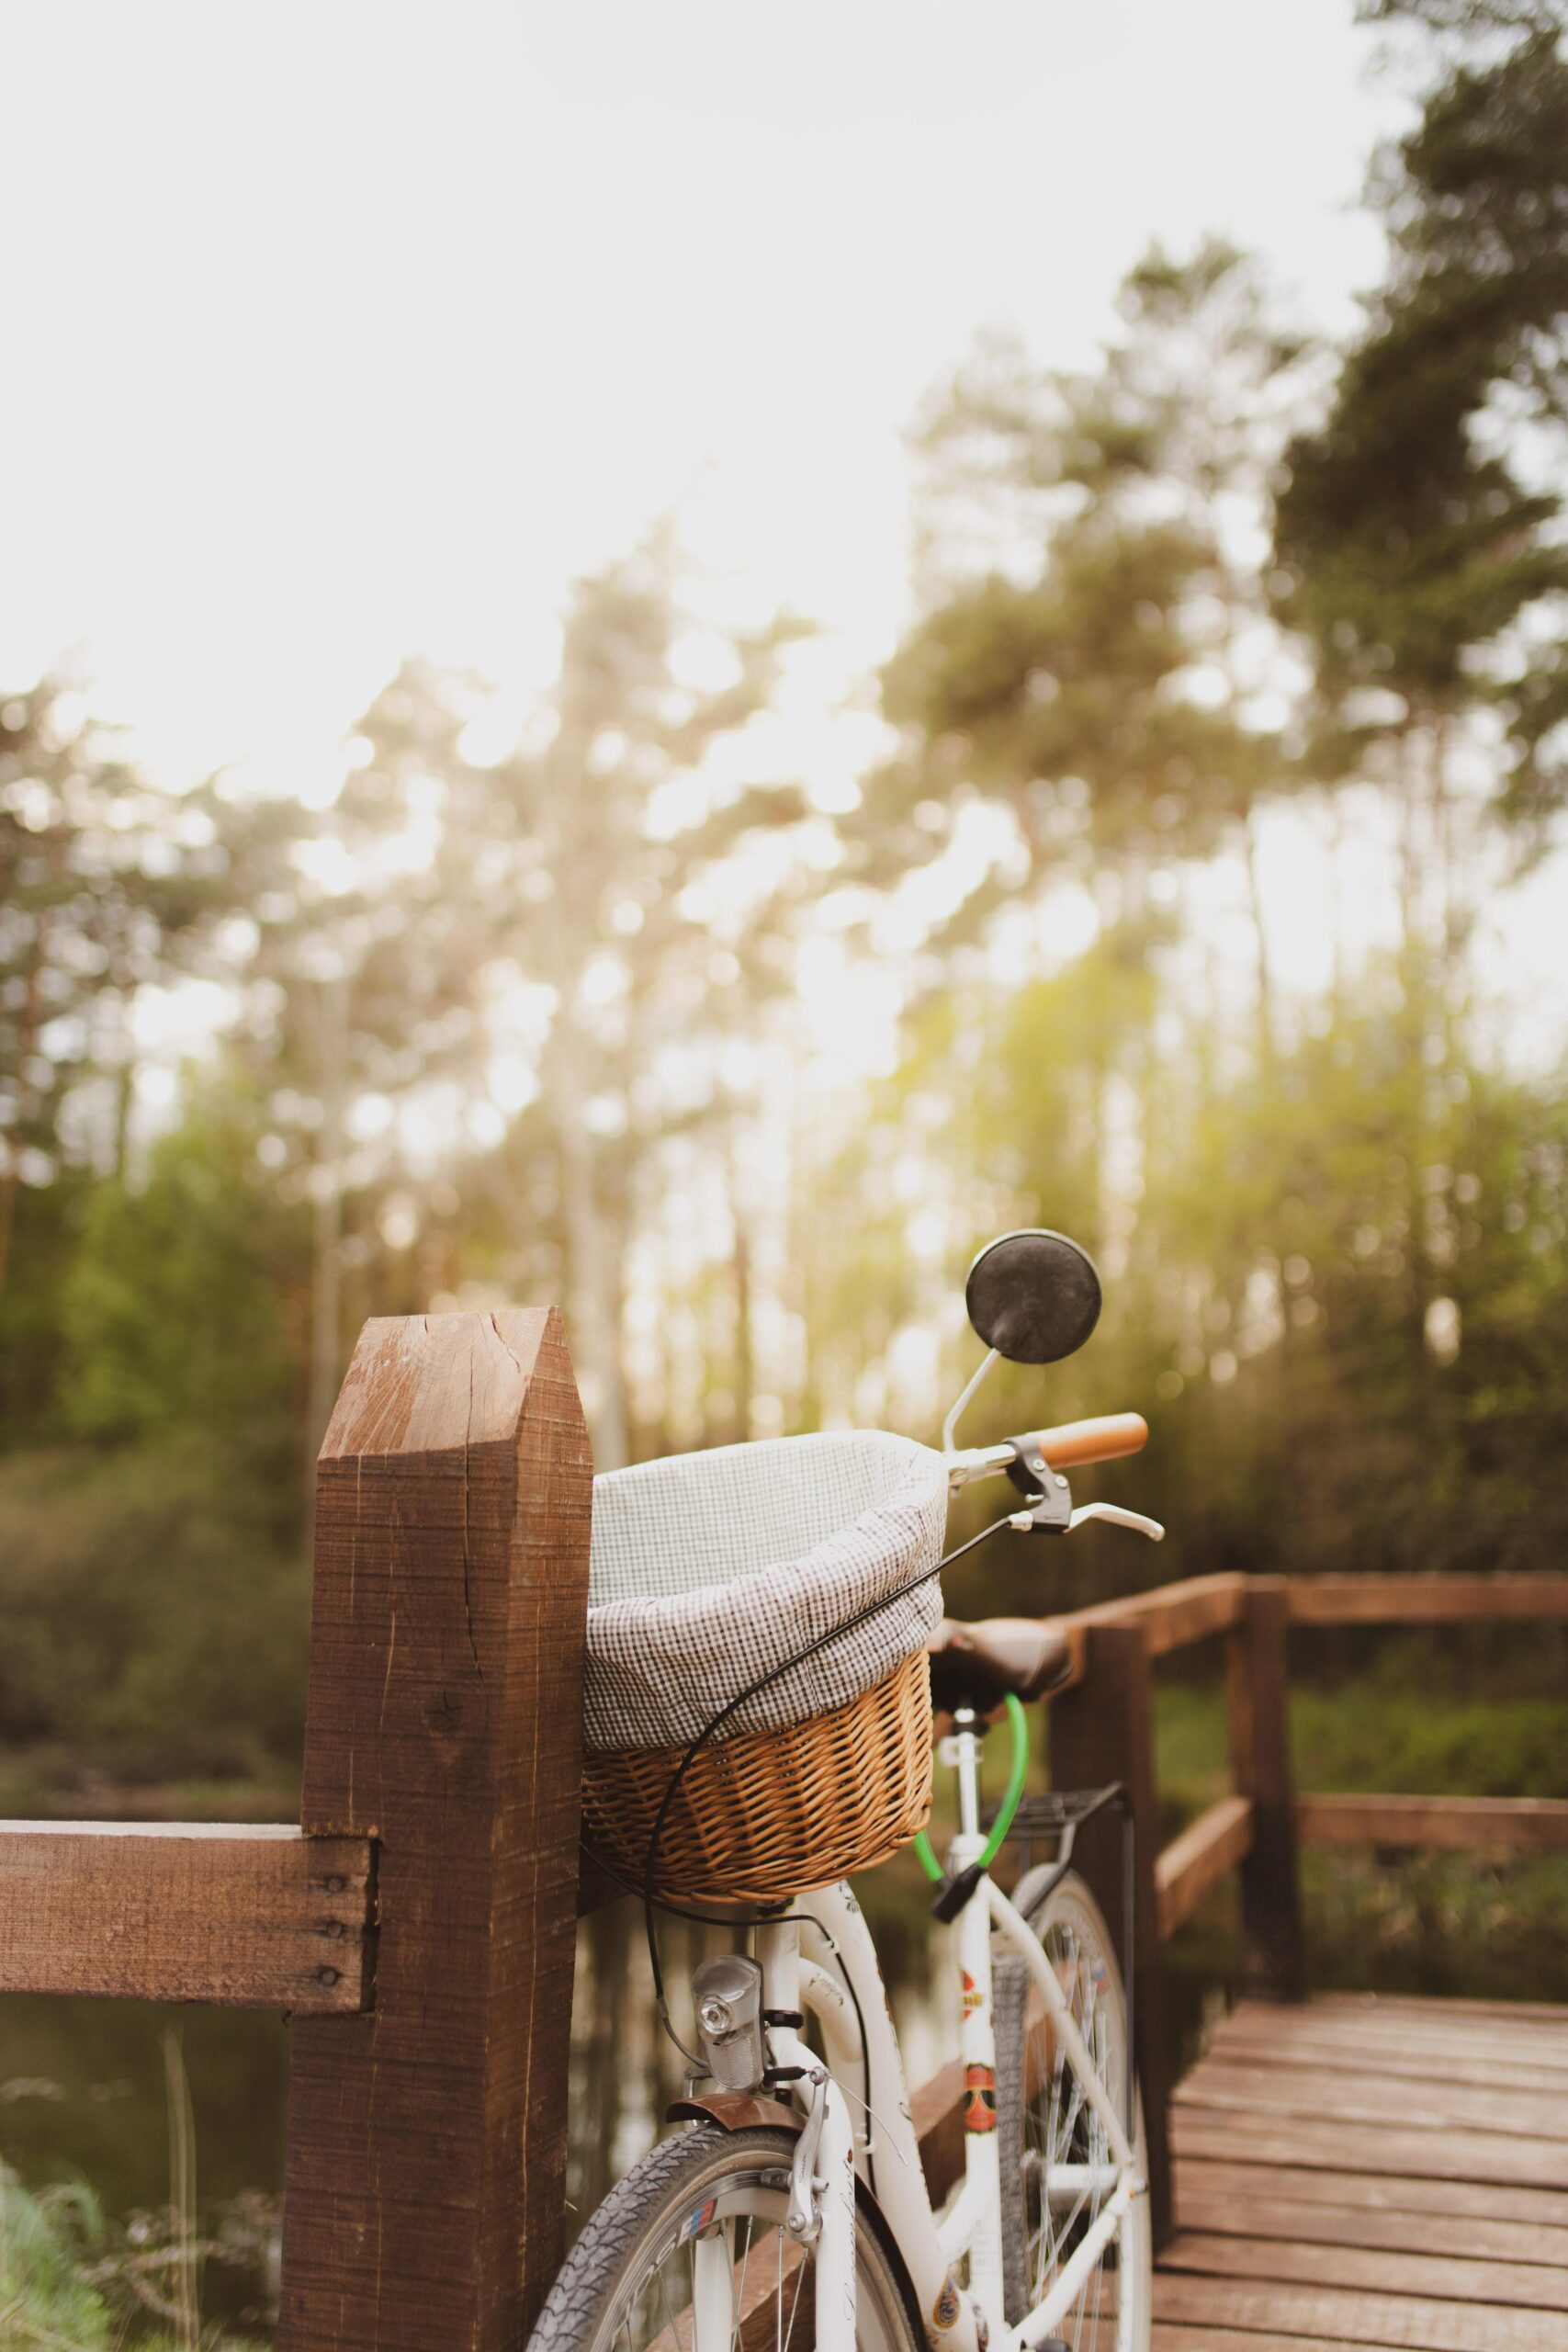 A vertical shot of a bicycle parked on a wooden bridge in the forest